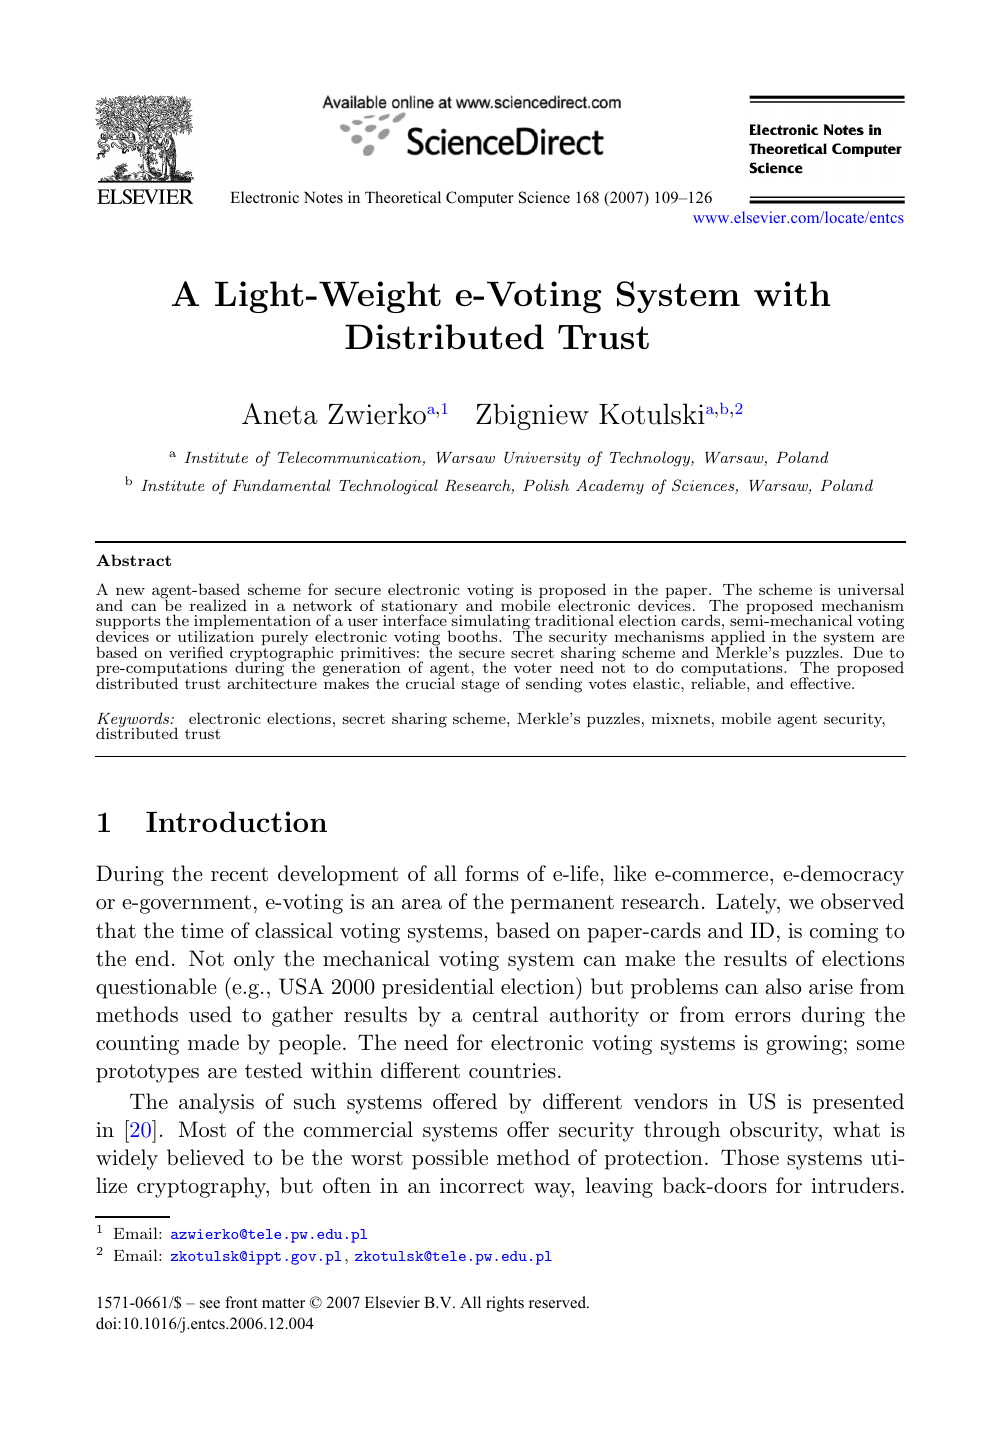 A Light-Weight e-Voting System with Distributed Trust